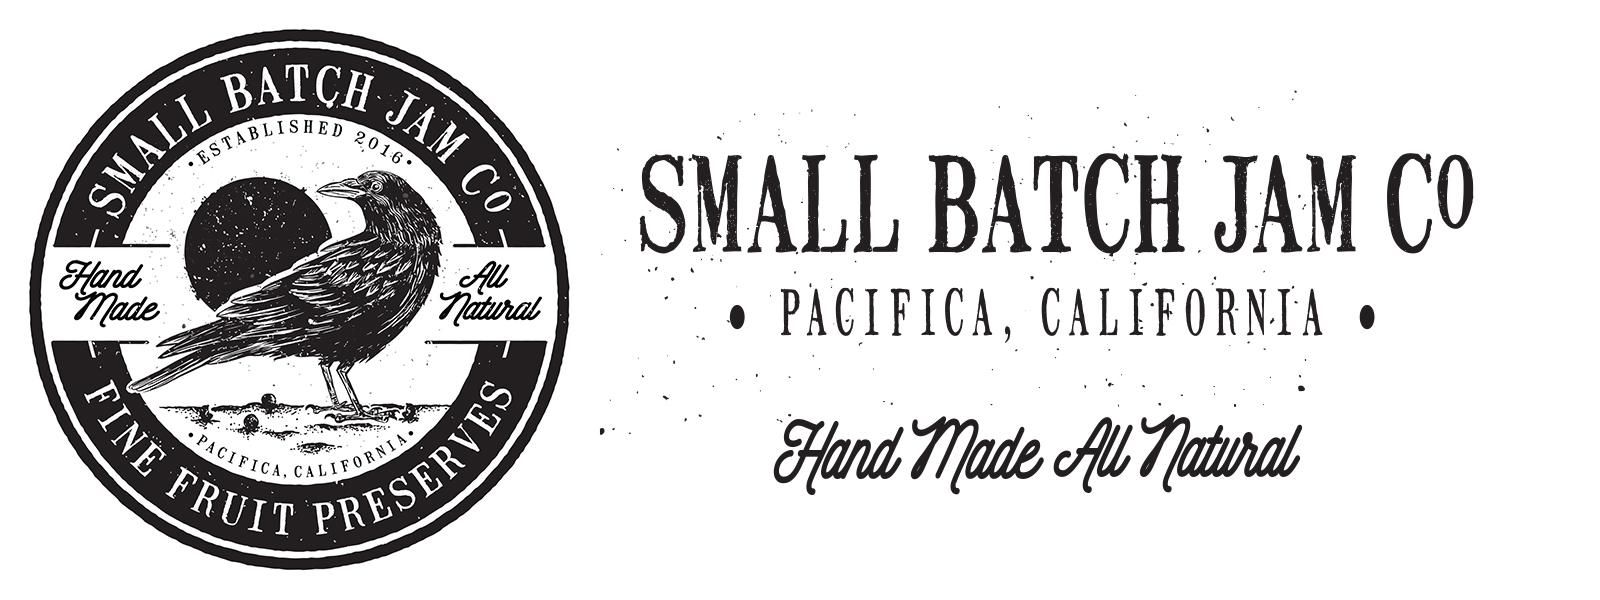 Small Batch Jam Co